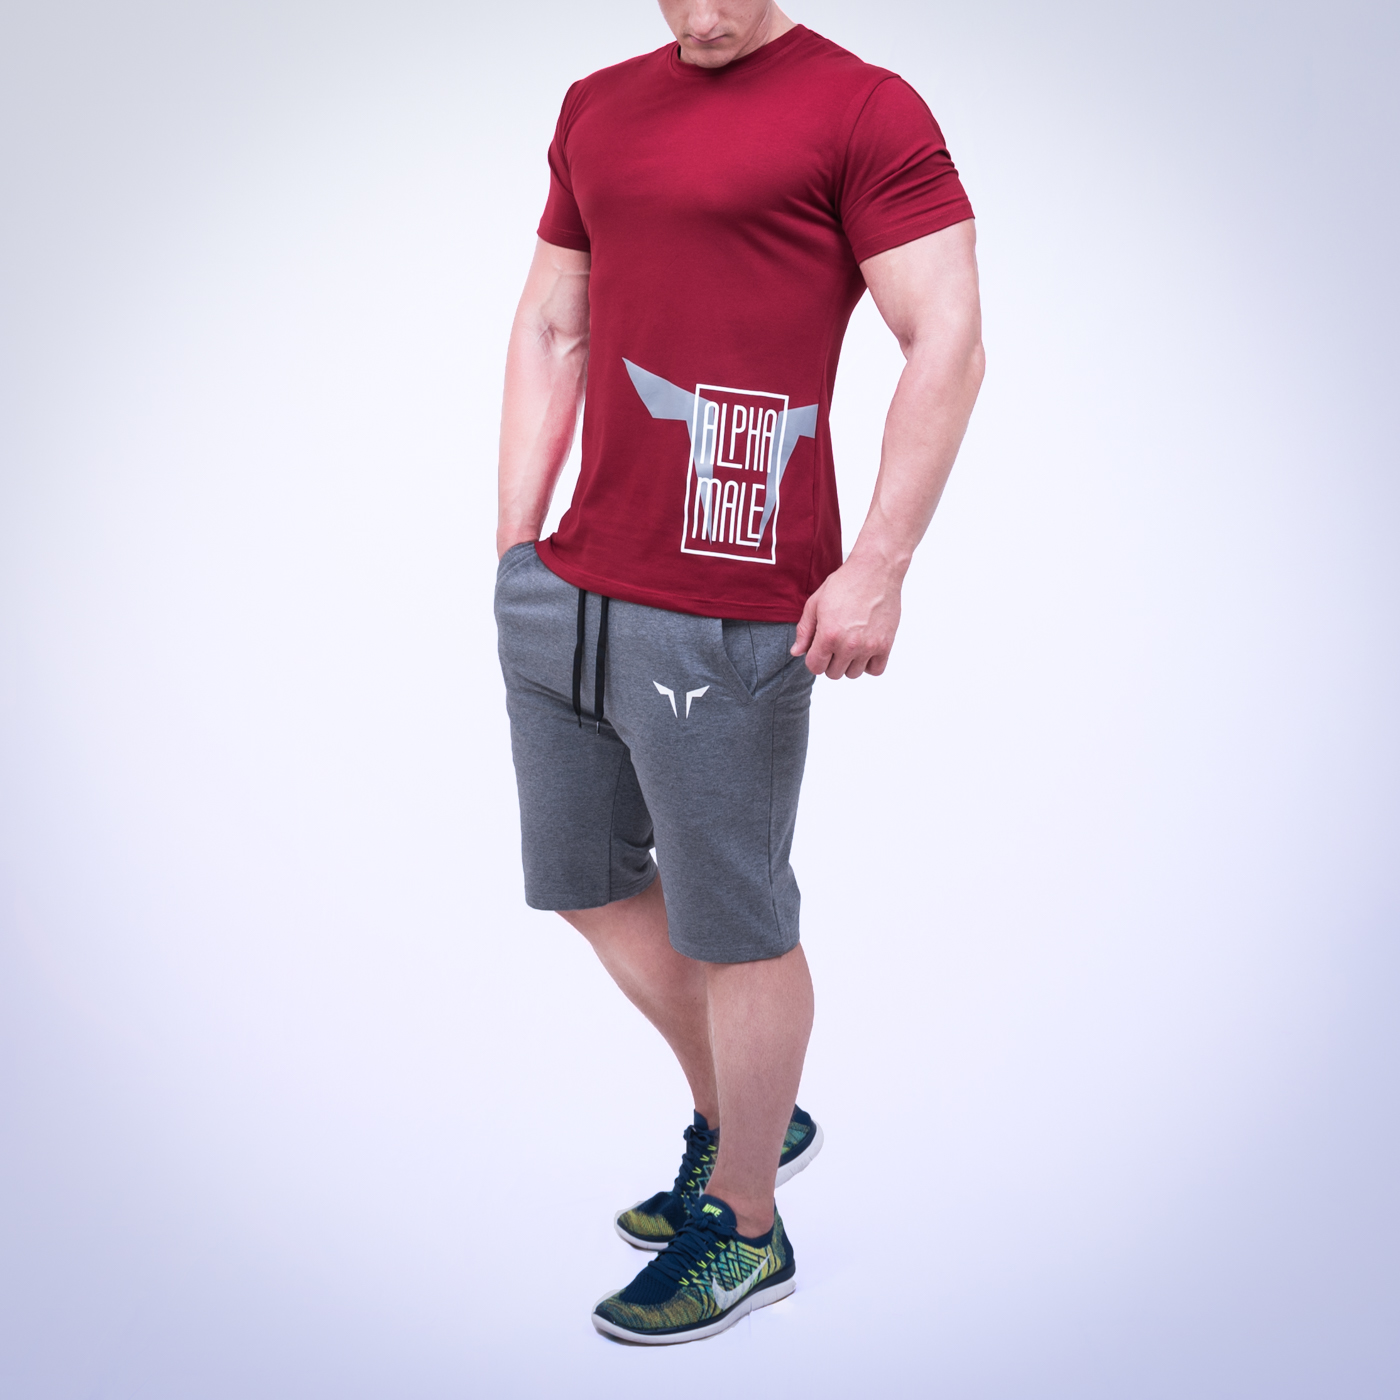 Dominate your space with red alpha gym tee by squat wolf for Gym shirt t shirt